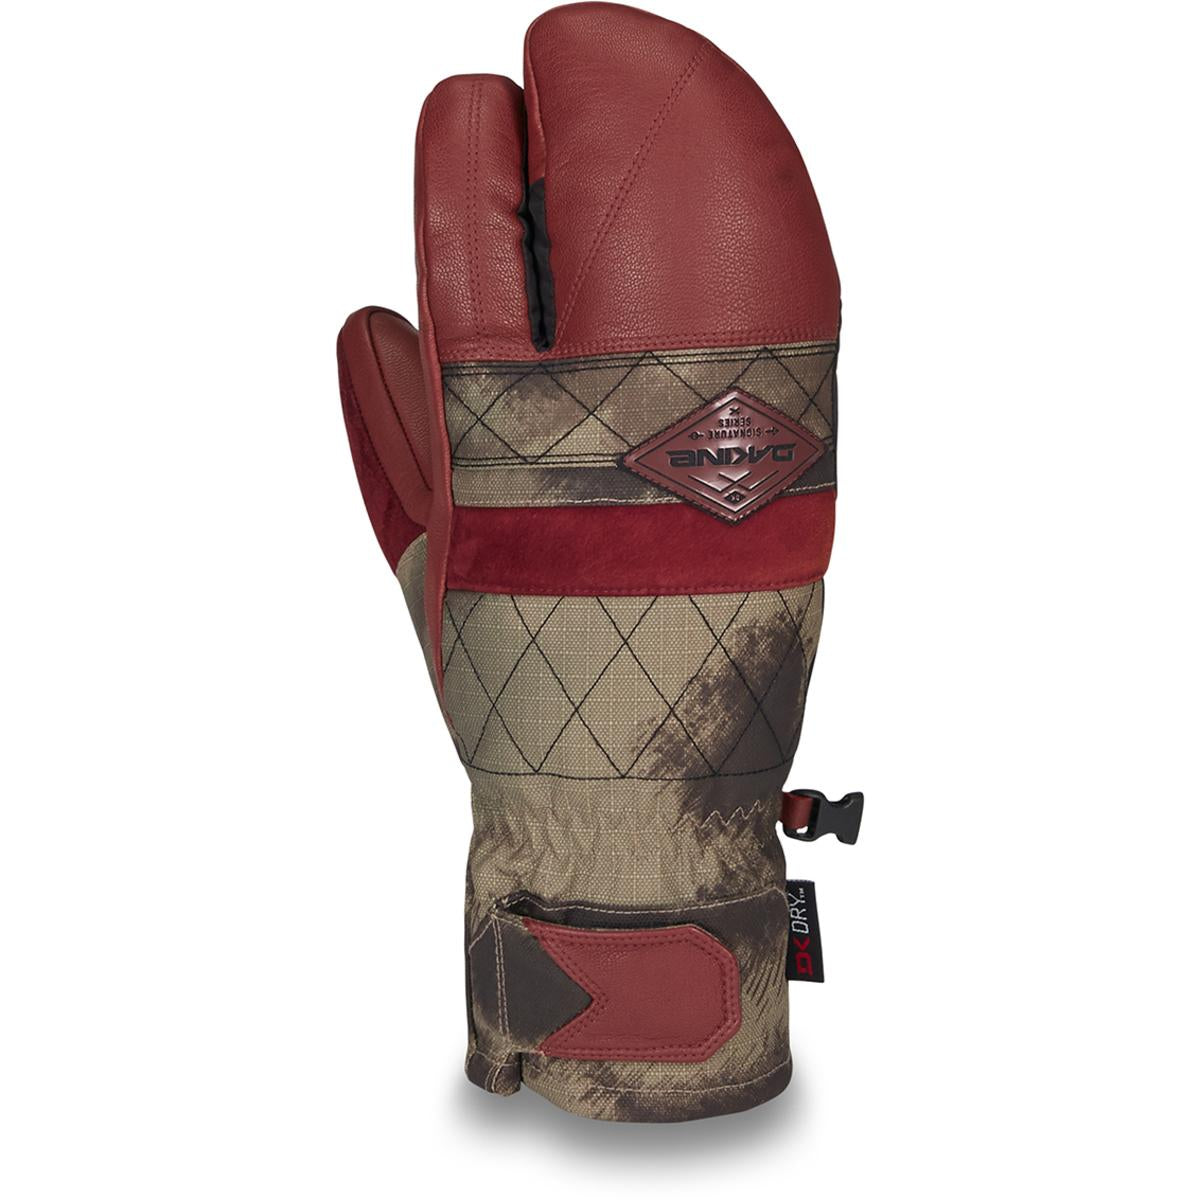 Dakine Team Fillmore Trigger Men's Mitt